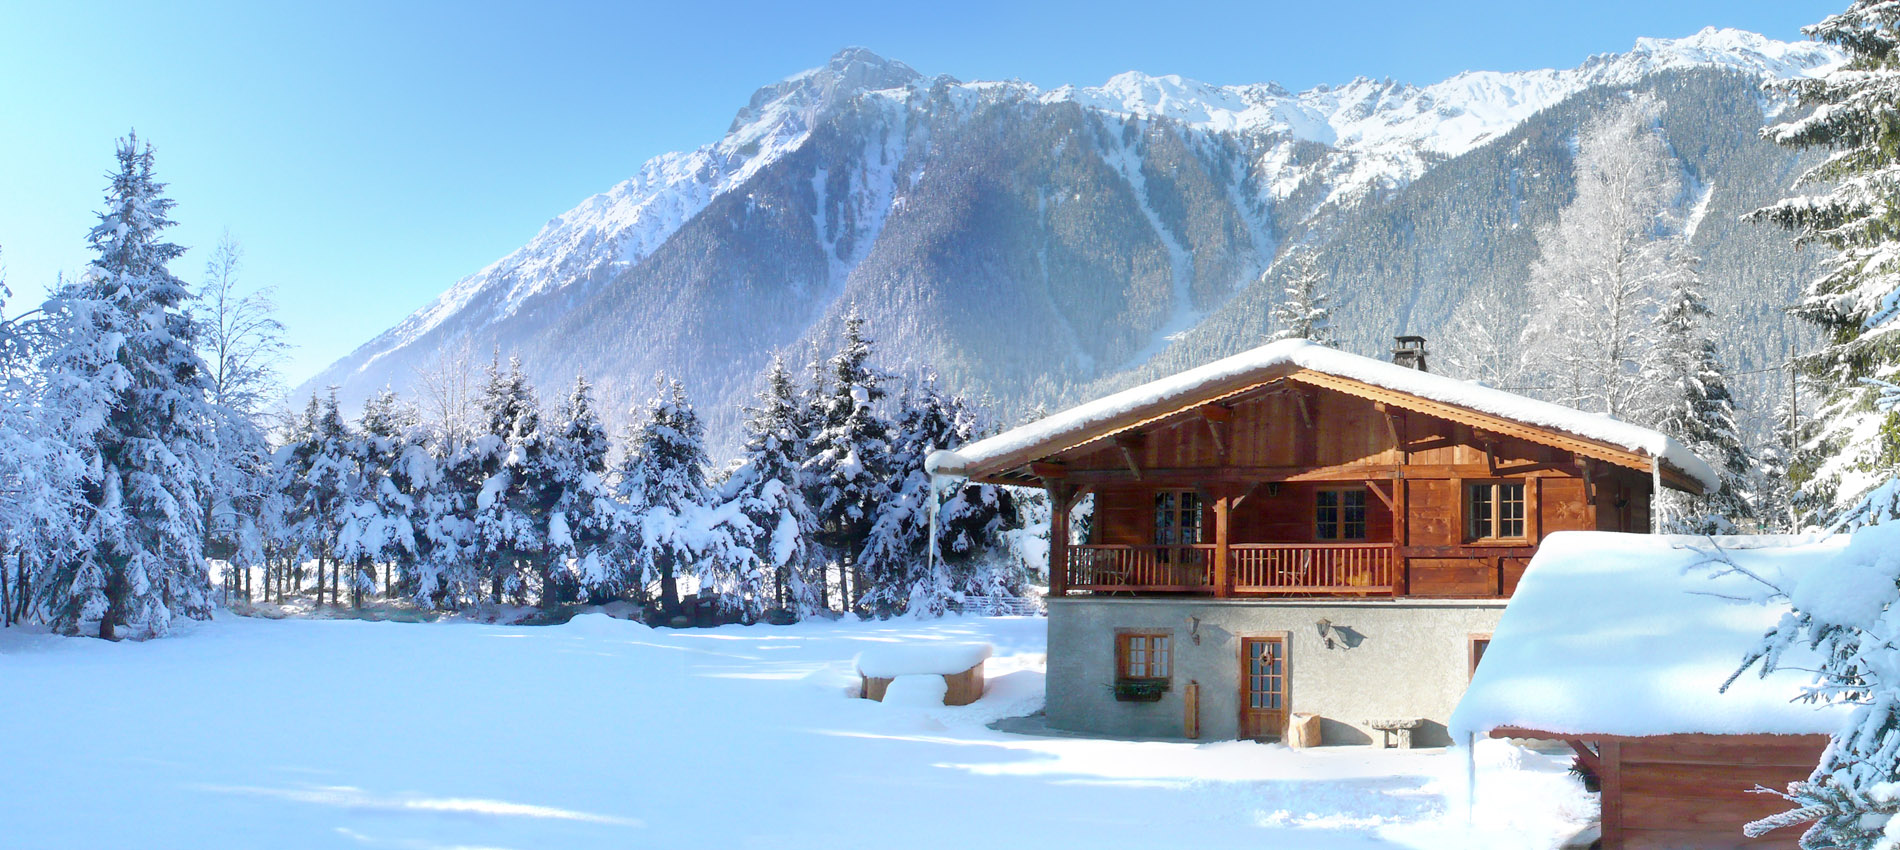 Chamonix Chalet in WInter